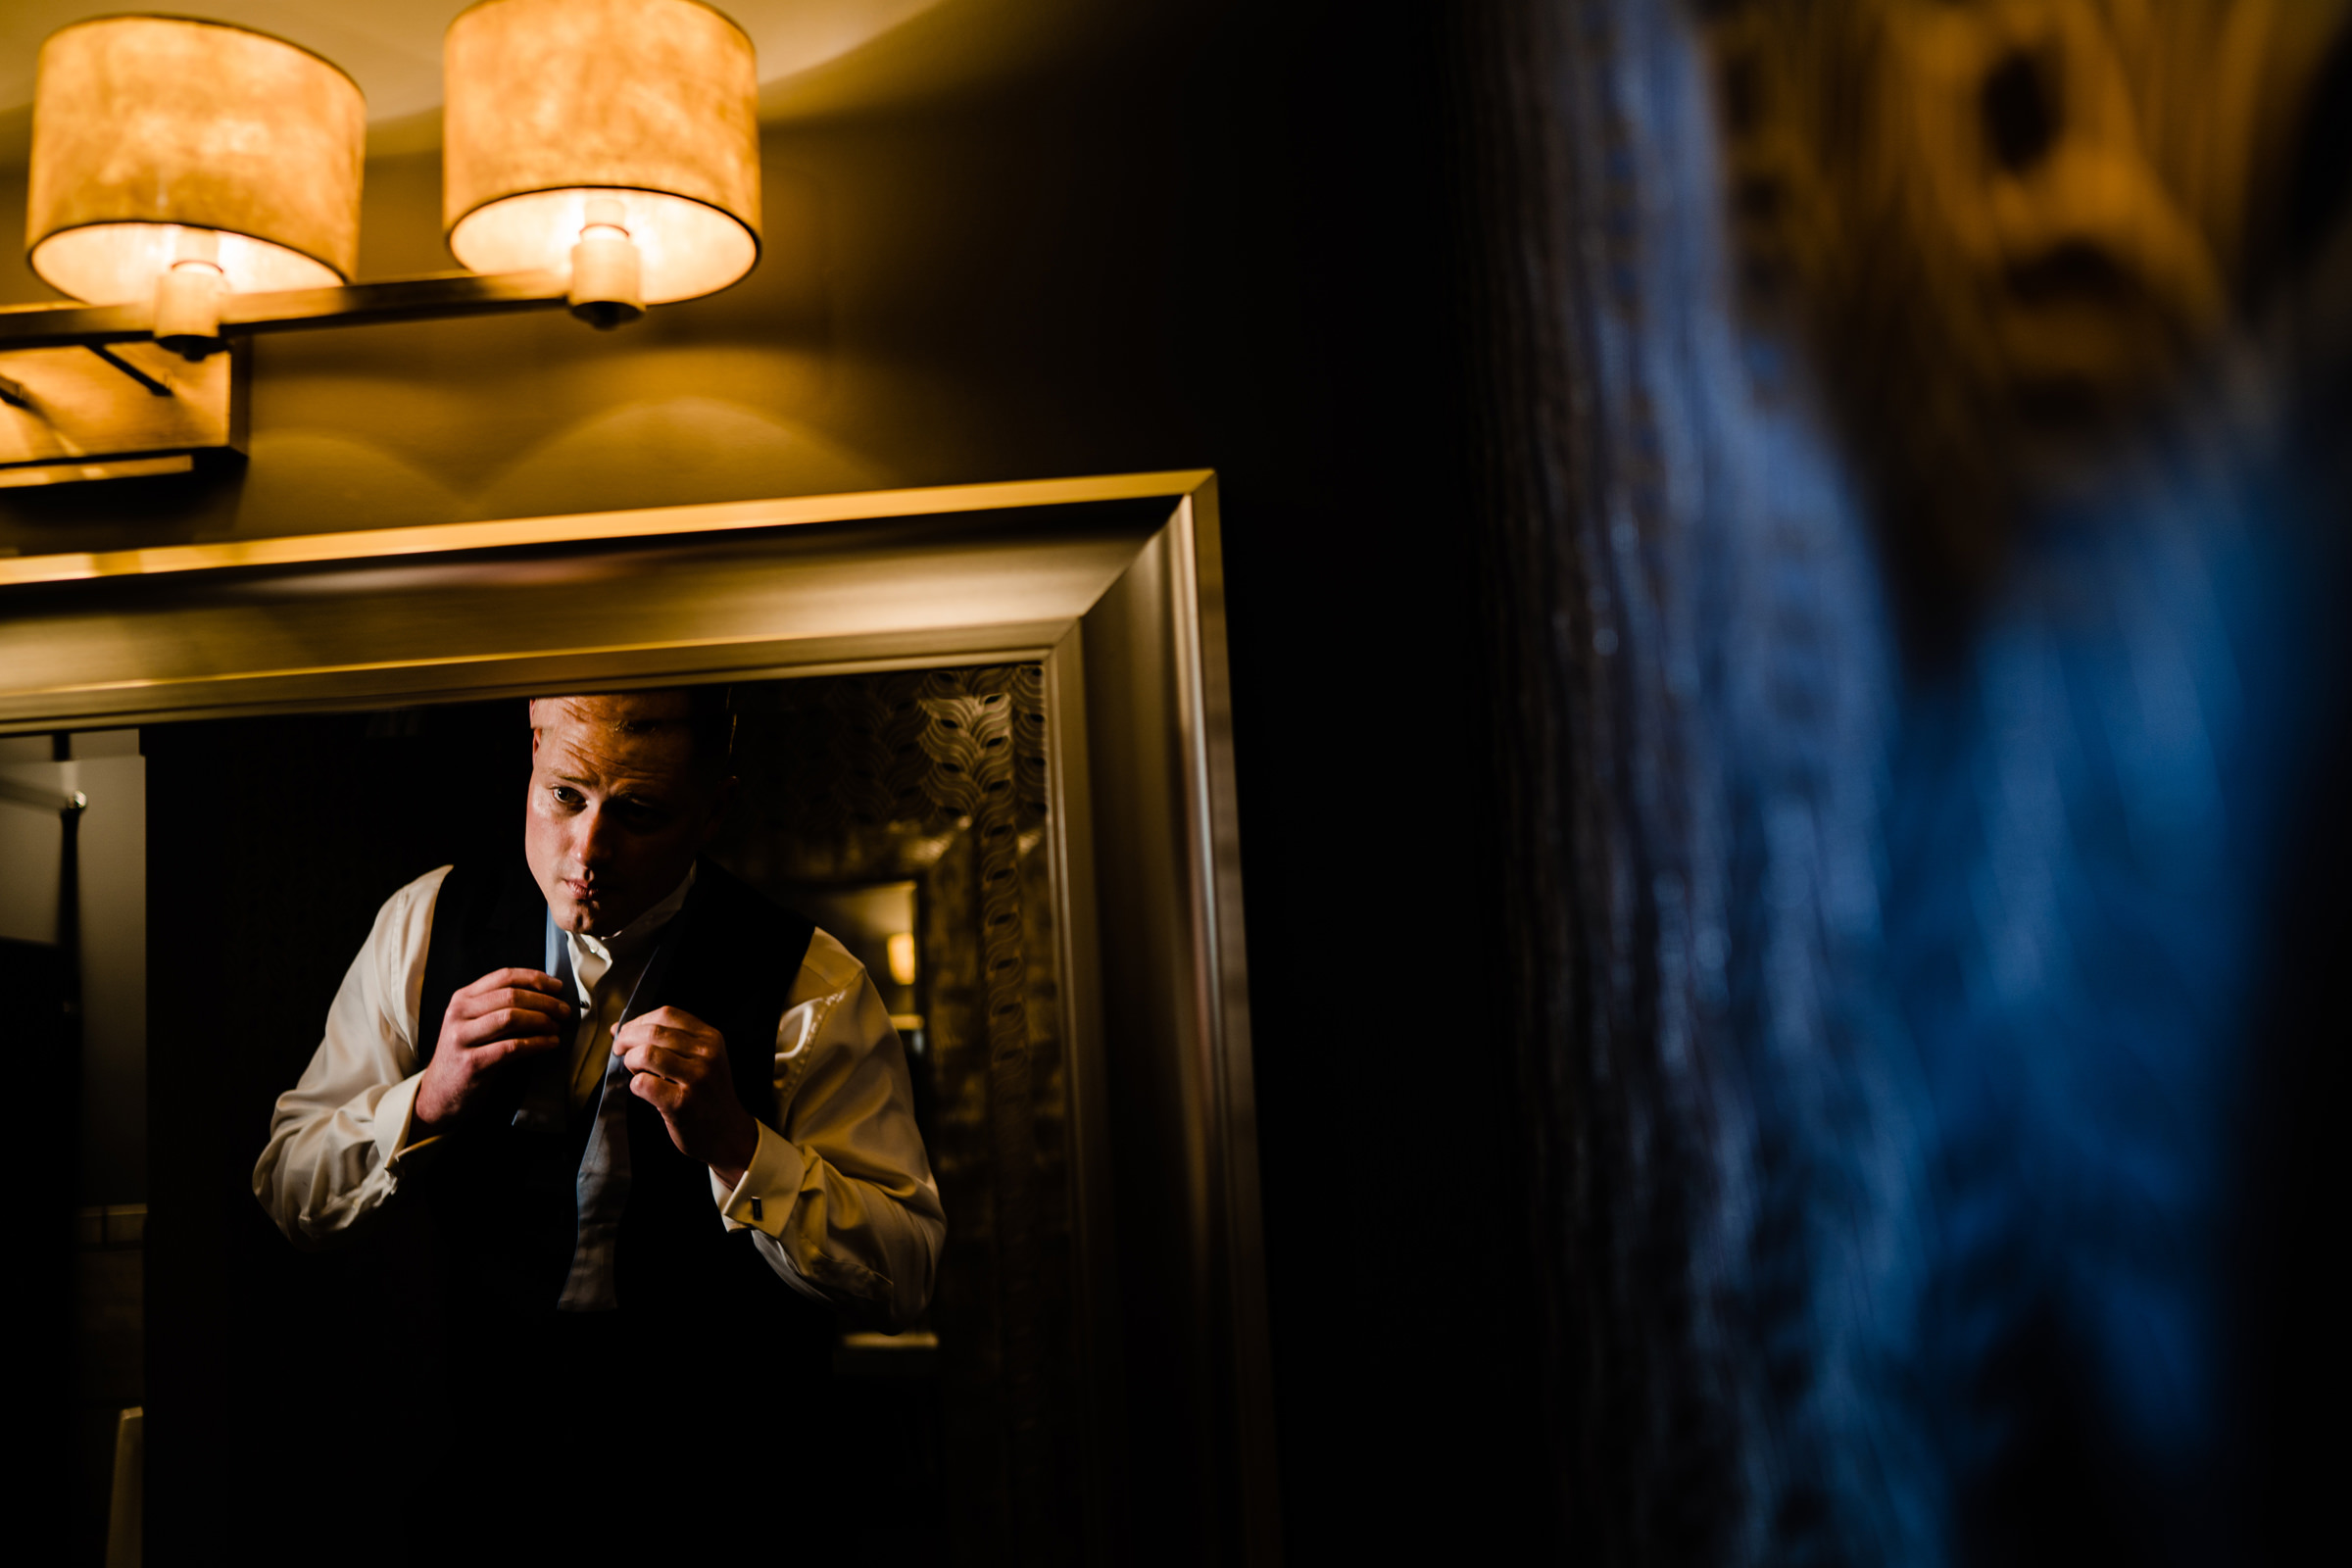 groom putting his tie on and getting ready in mirror-Arkansas photographer- photo by Vinson Images